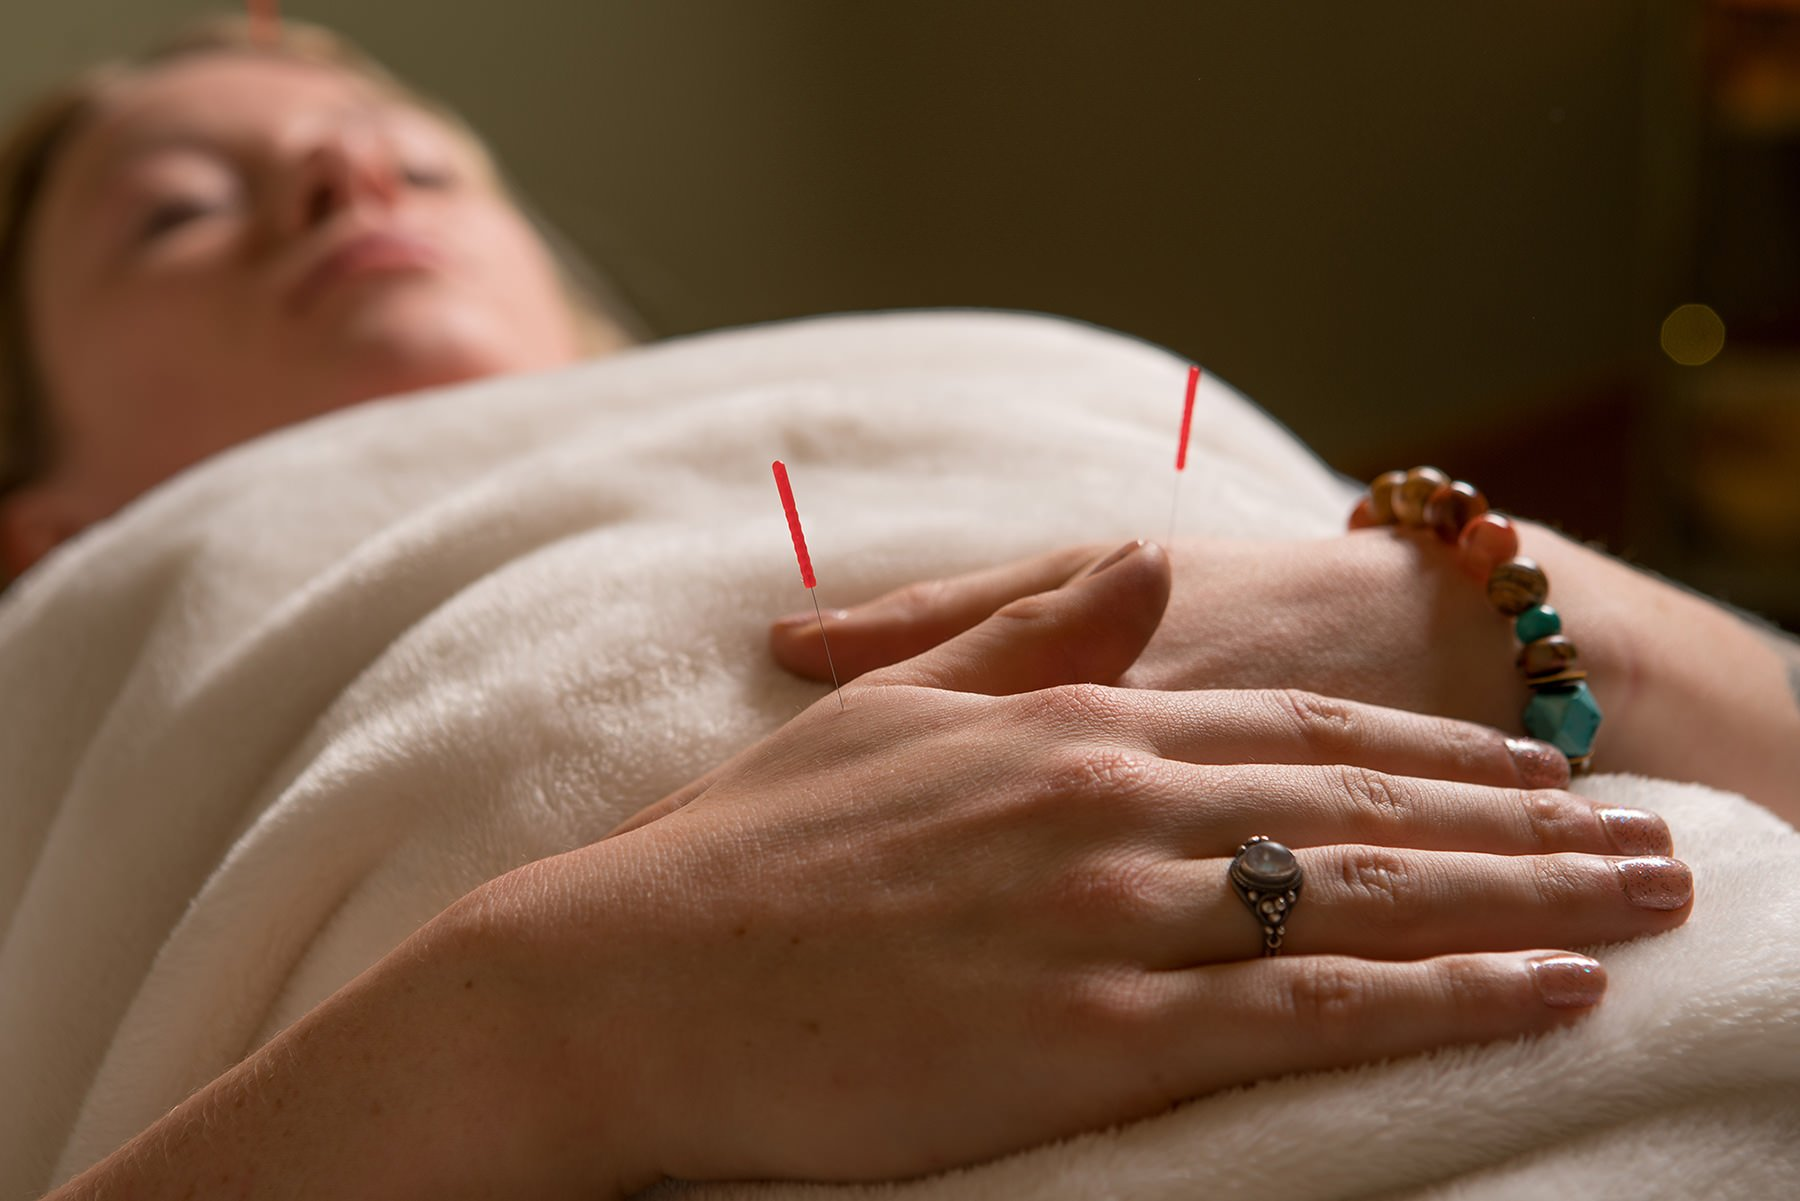 Two acupuncture needles in a woman's hands at The Sanctuary